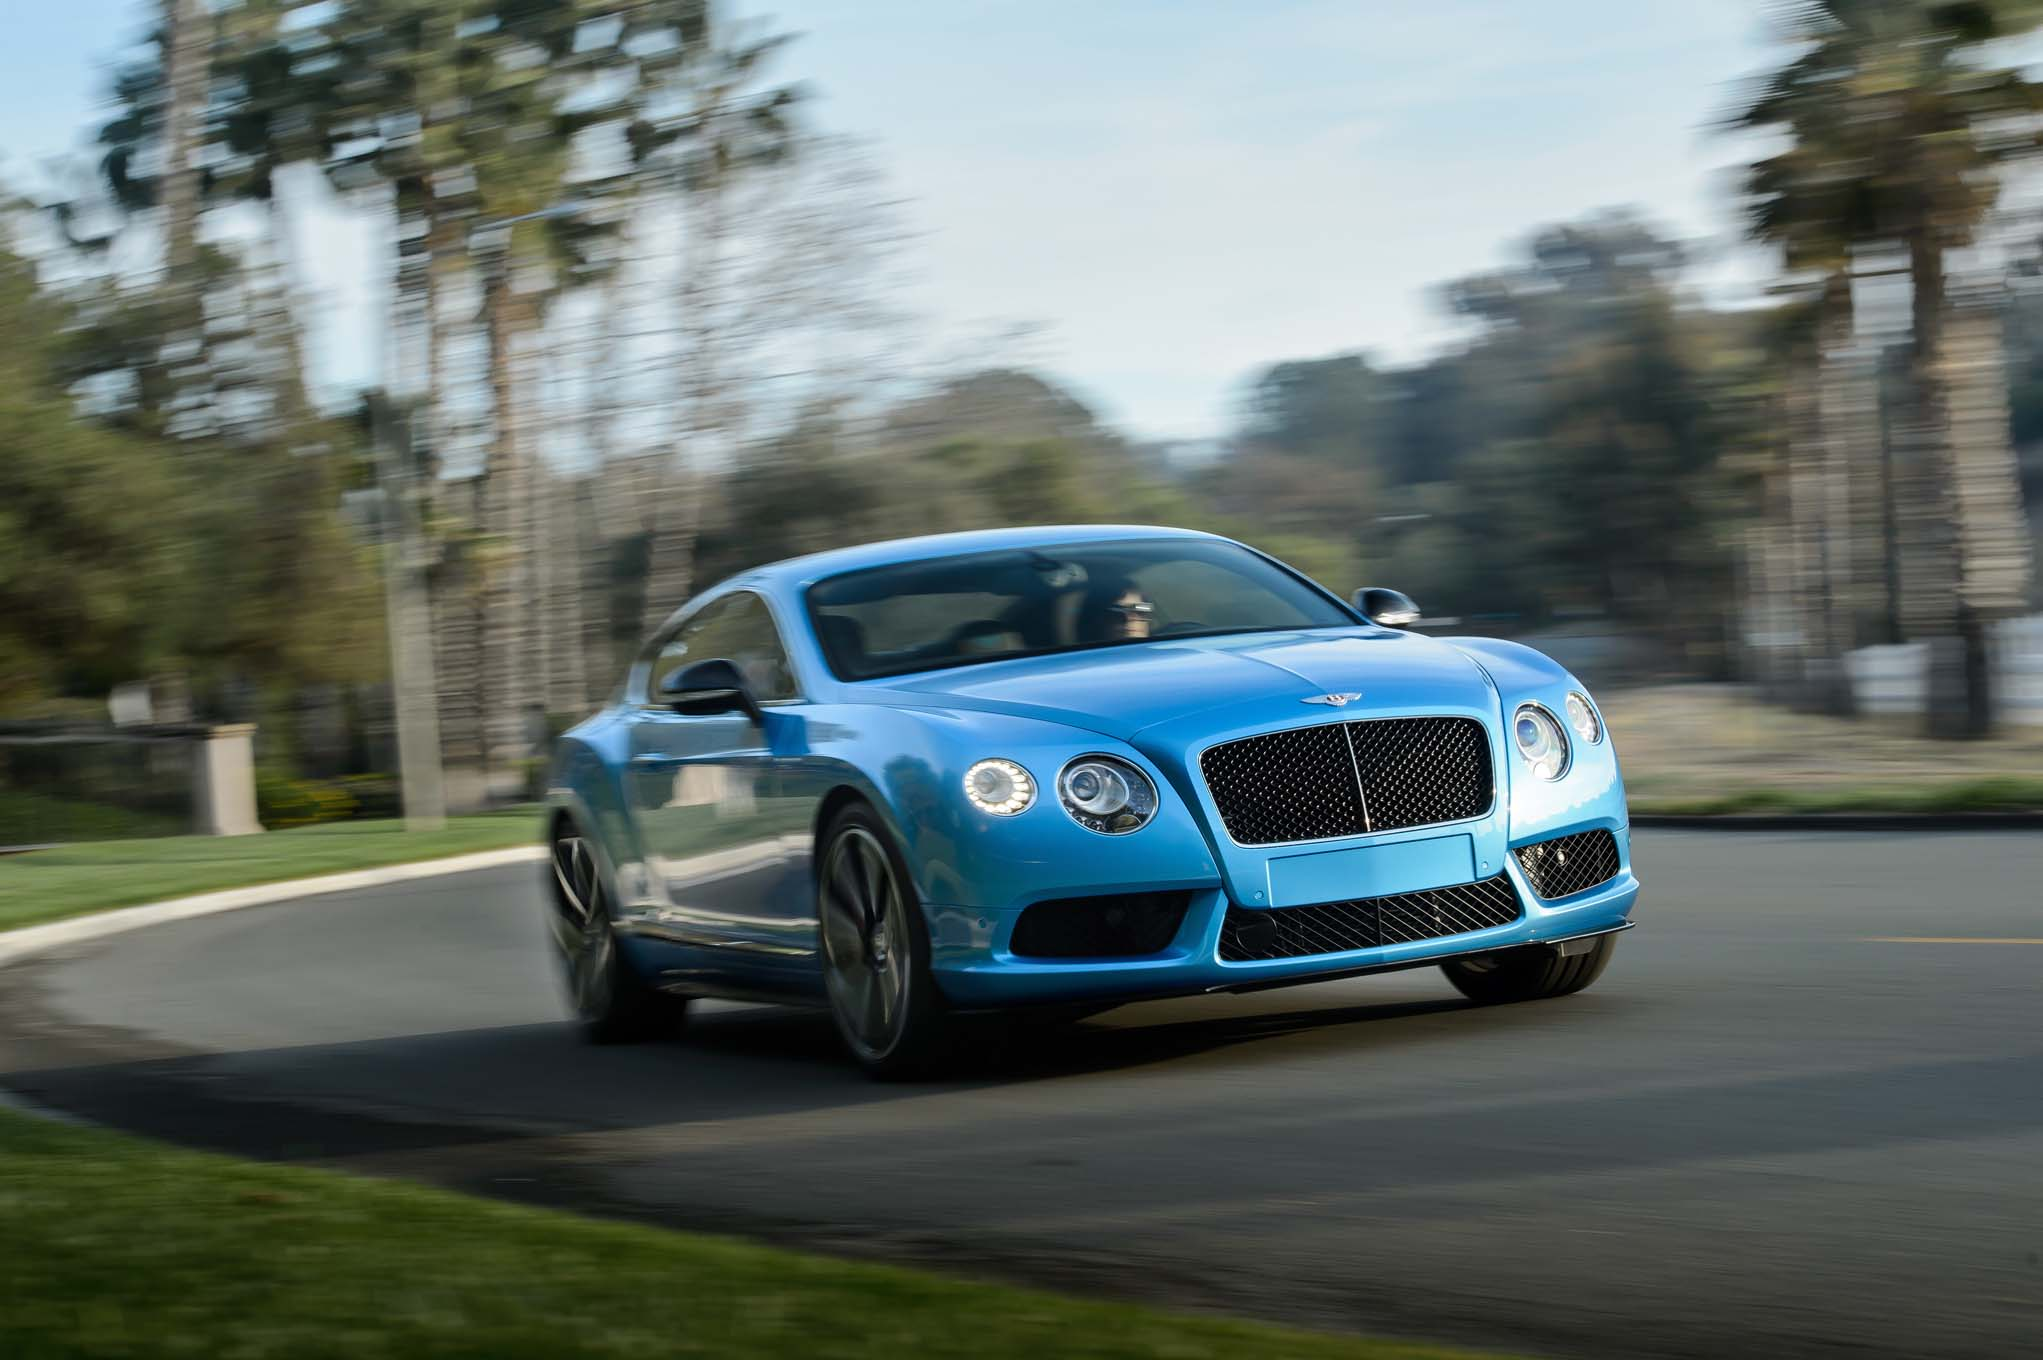 2014 Bentley Continental GT V8 S on World\'s Fastest Car Show - Motor ...